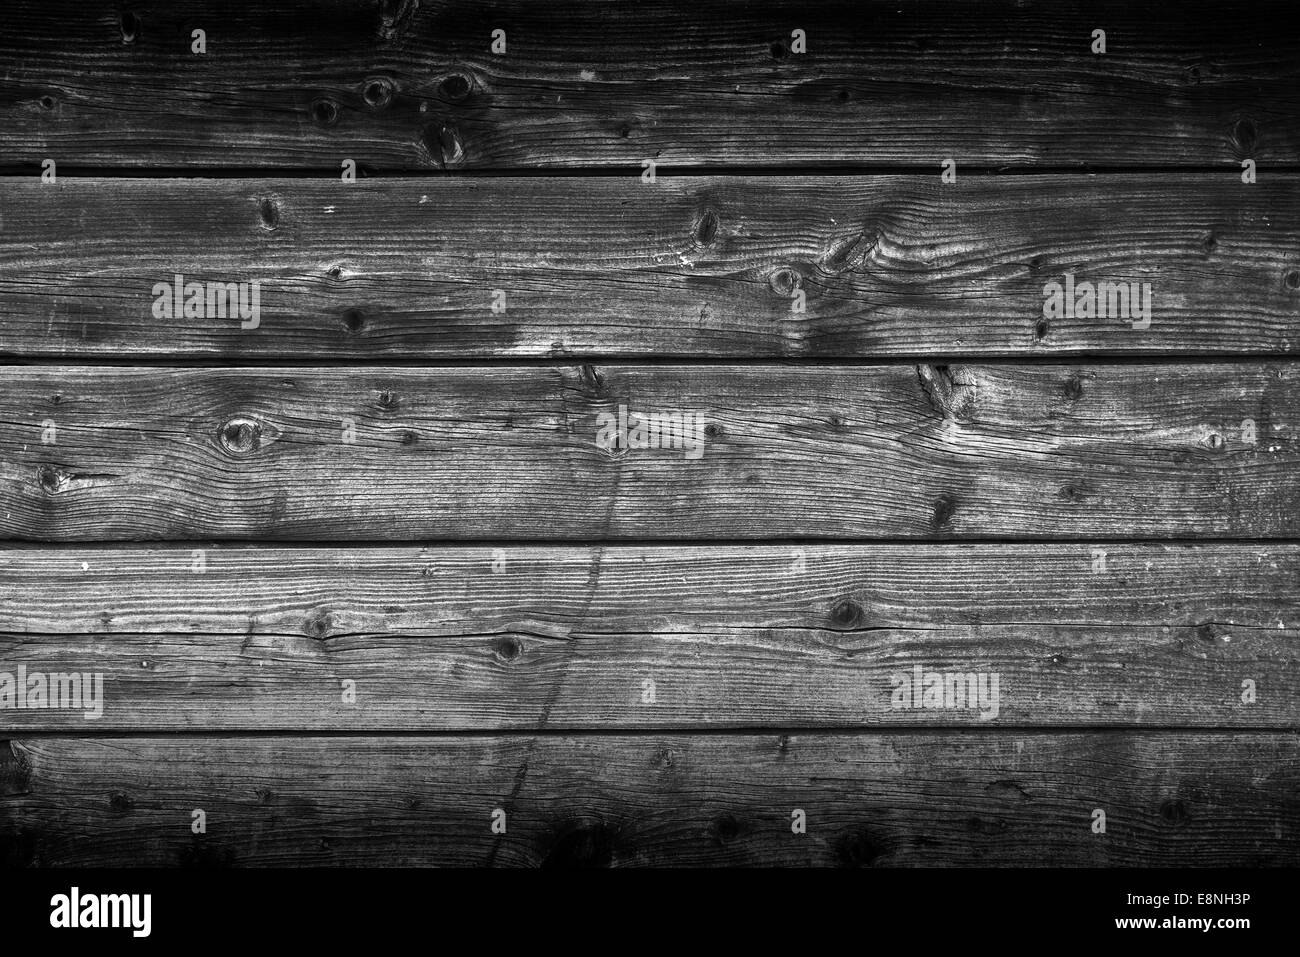 Old Gray Wooden Planks Texture as backdrop or background, natural pattern. - Stock Image